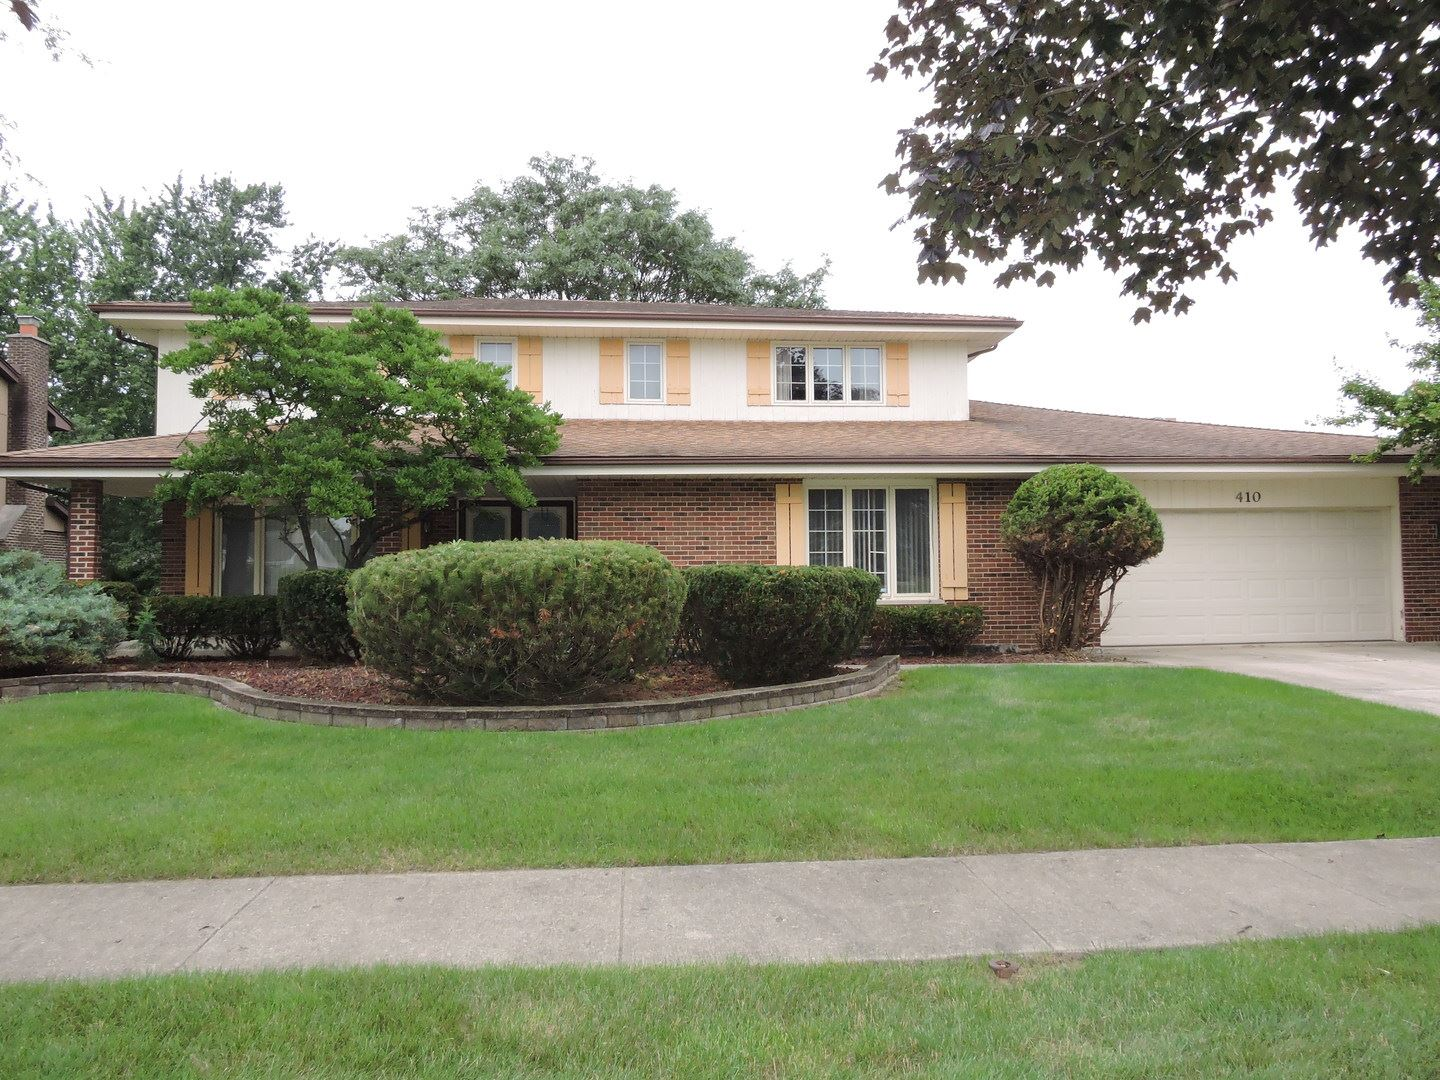 410 Woodgate Court, Willowbrook, IL 60527 - #: 11166922